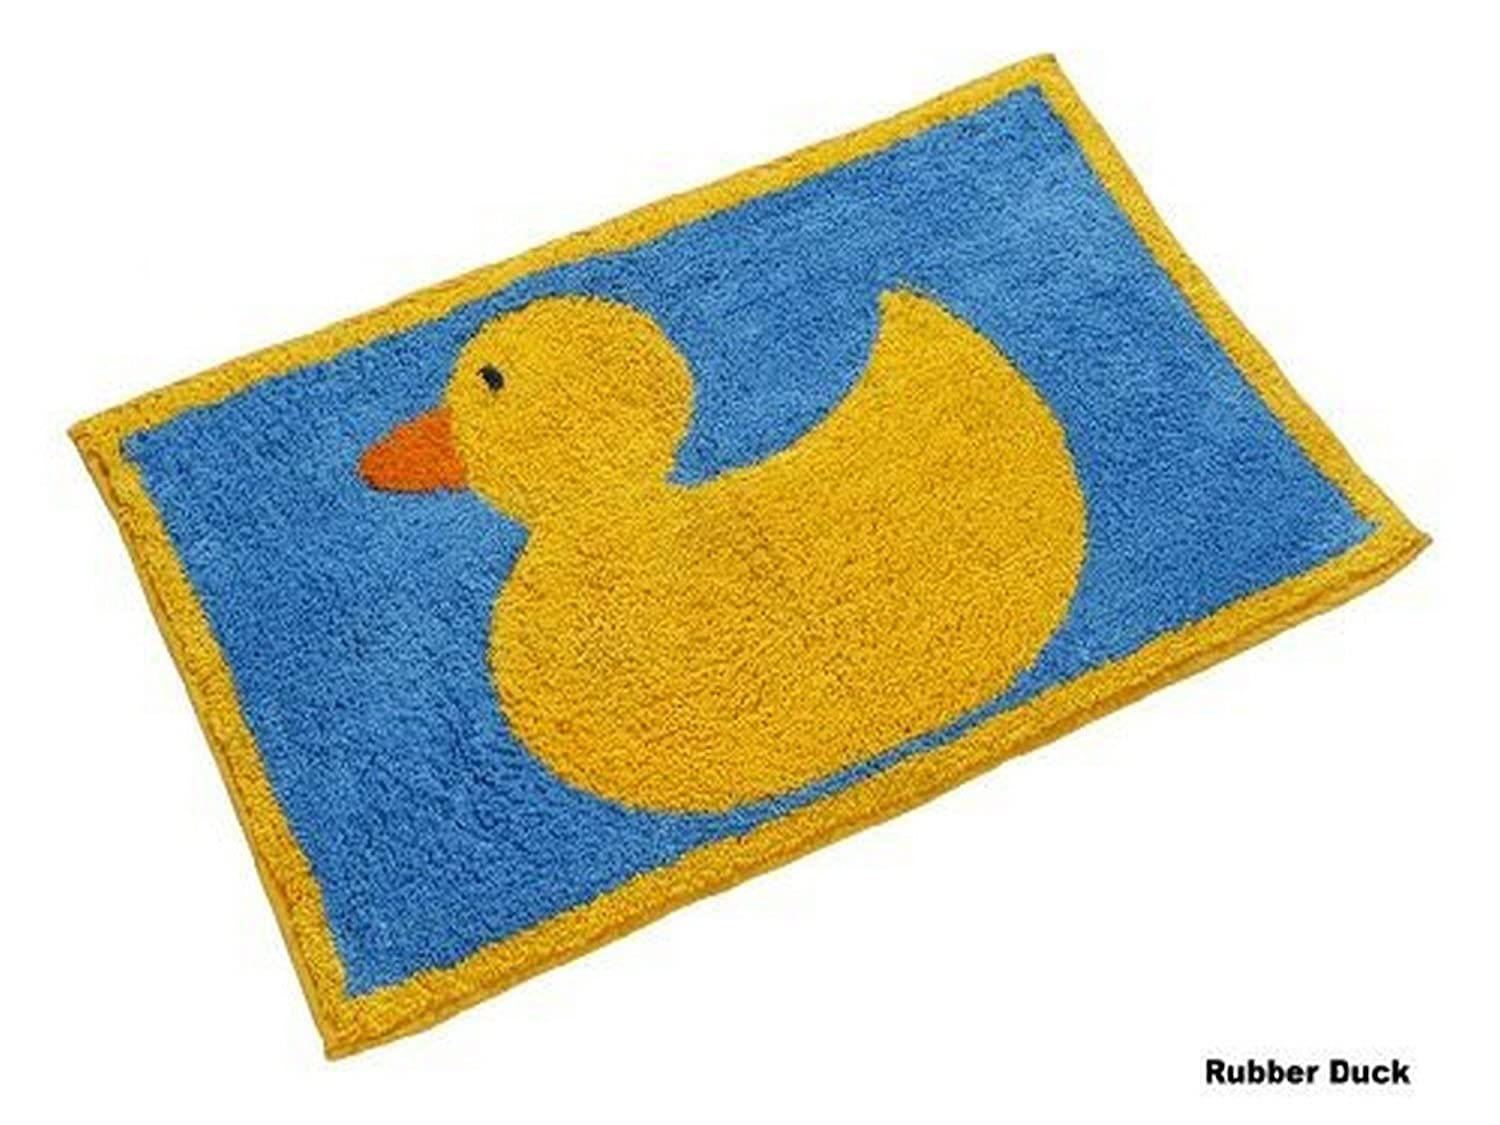 homescapes rubber duck bath mat 45 x 75 cm gsm rug in 100 cotton non slip spray back washable at home amazoncouk kitchen u0026 home